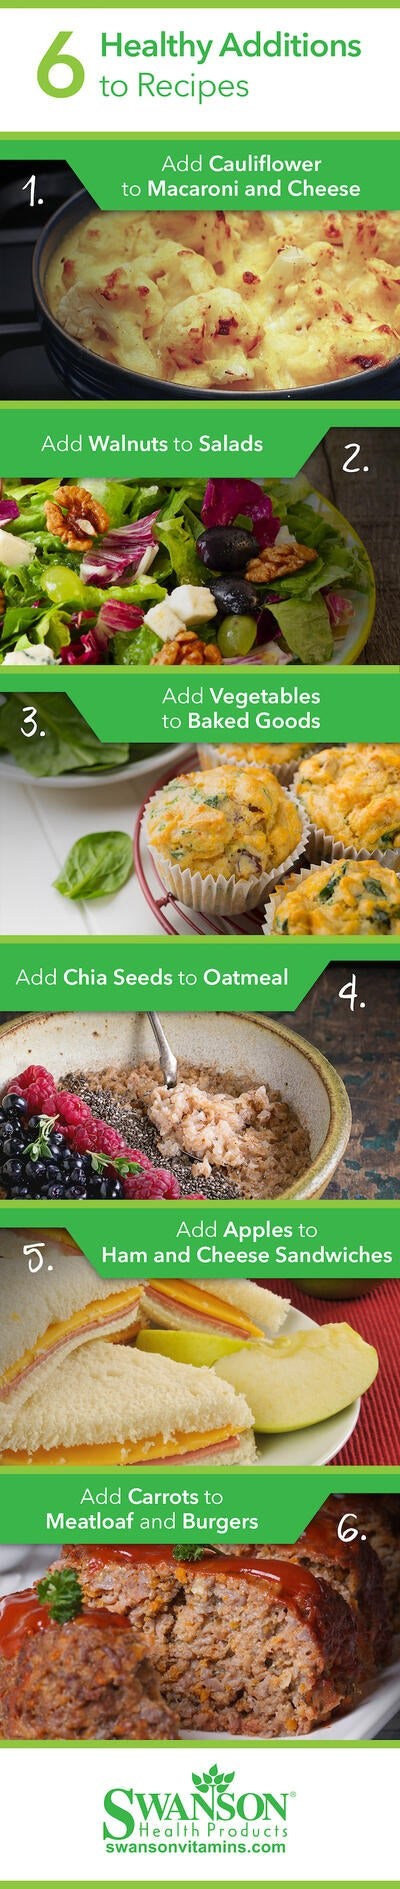 Add 1 Extra Ingredient to Make These Recipes Healthier